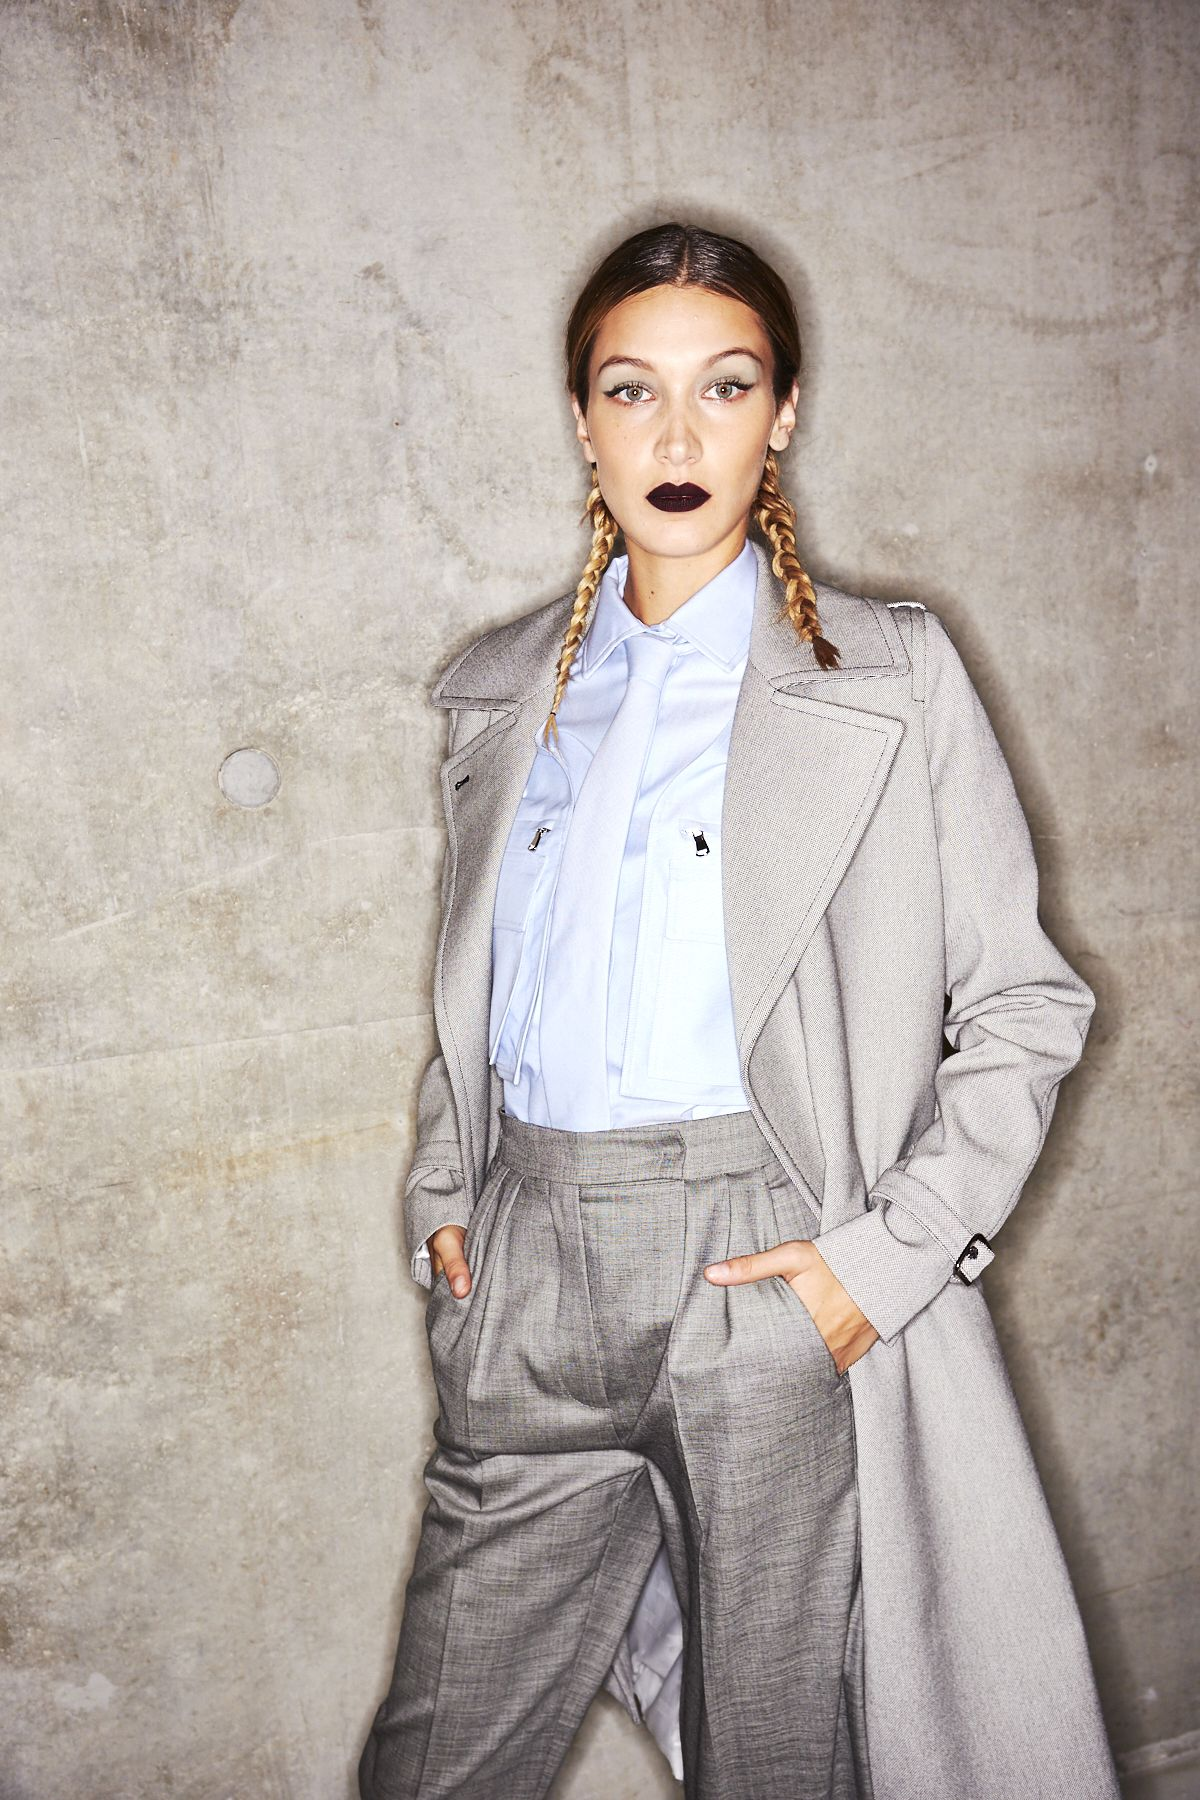 Exclusive Backstage Photos from Max Mara Spring/Summer 2020